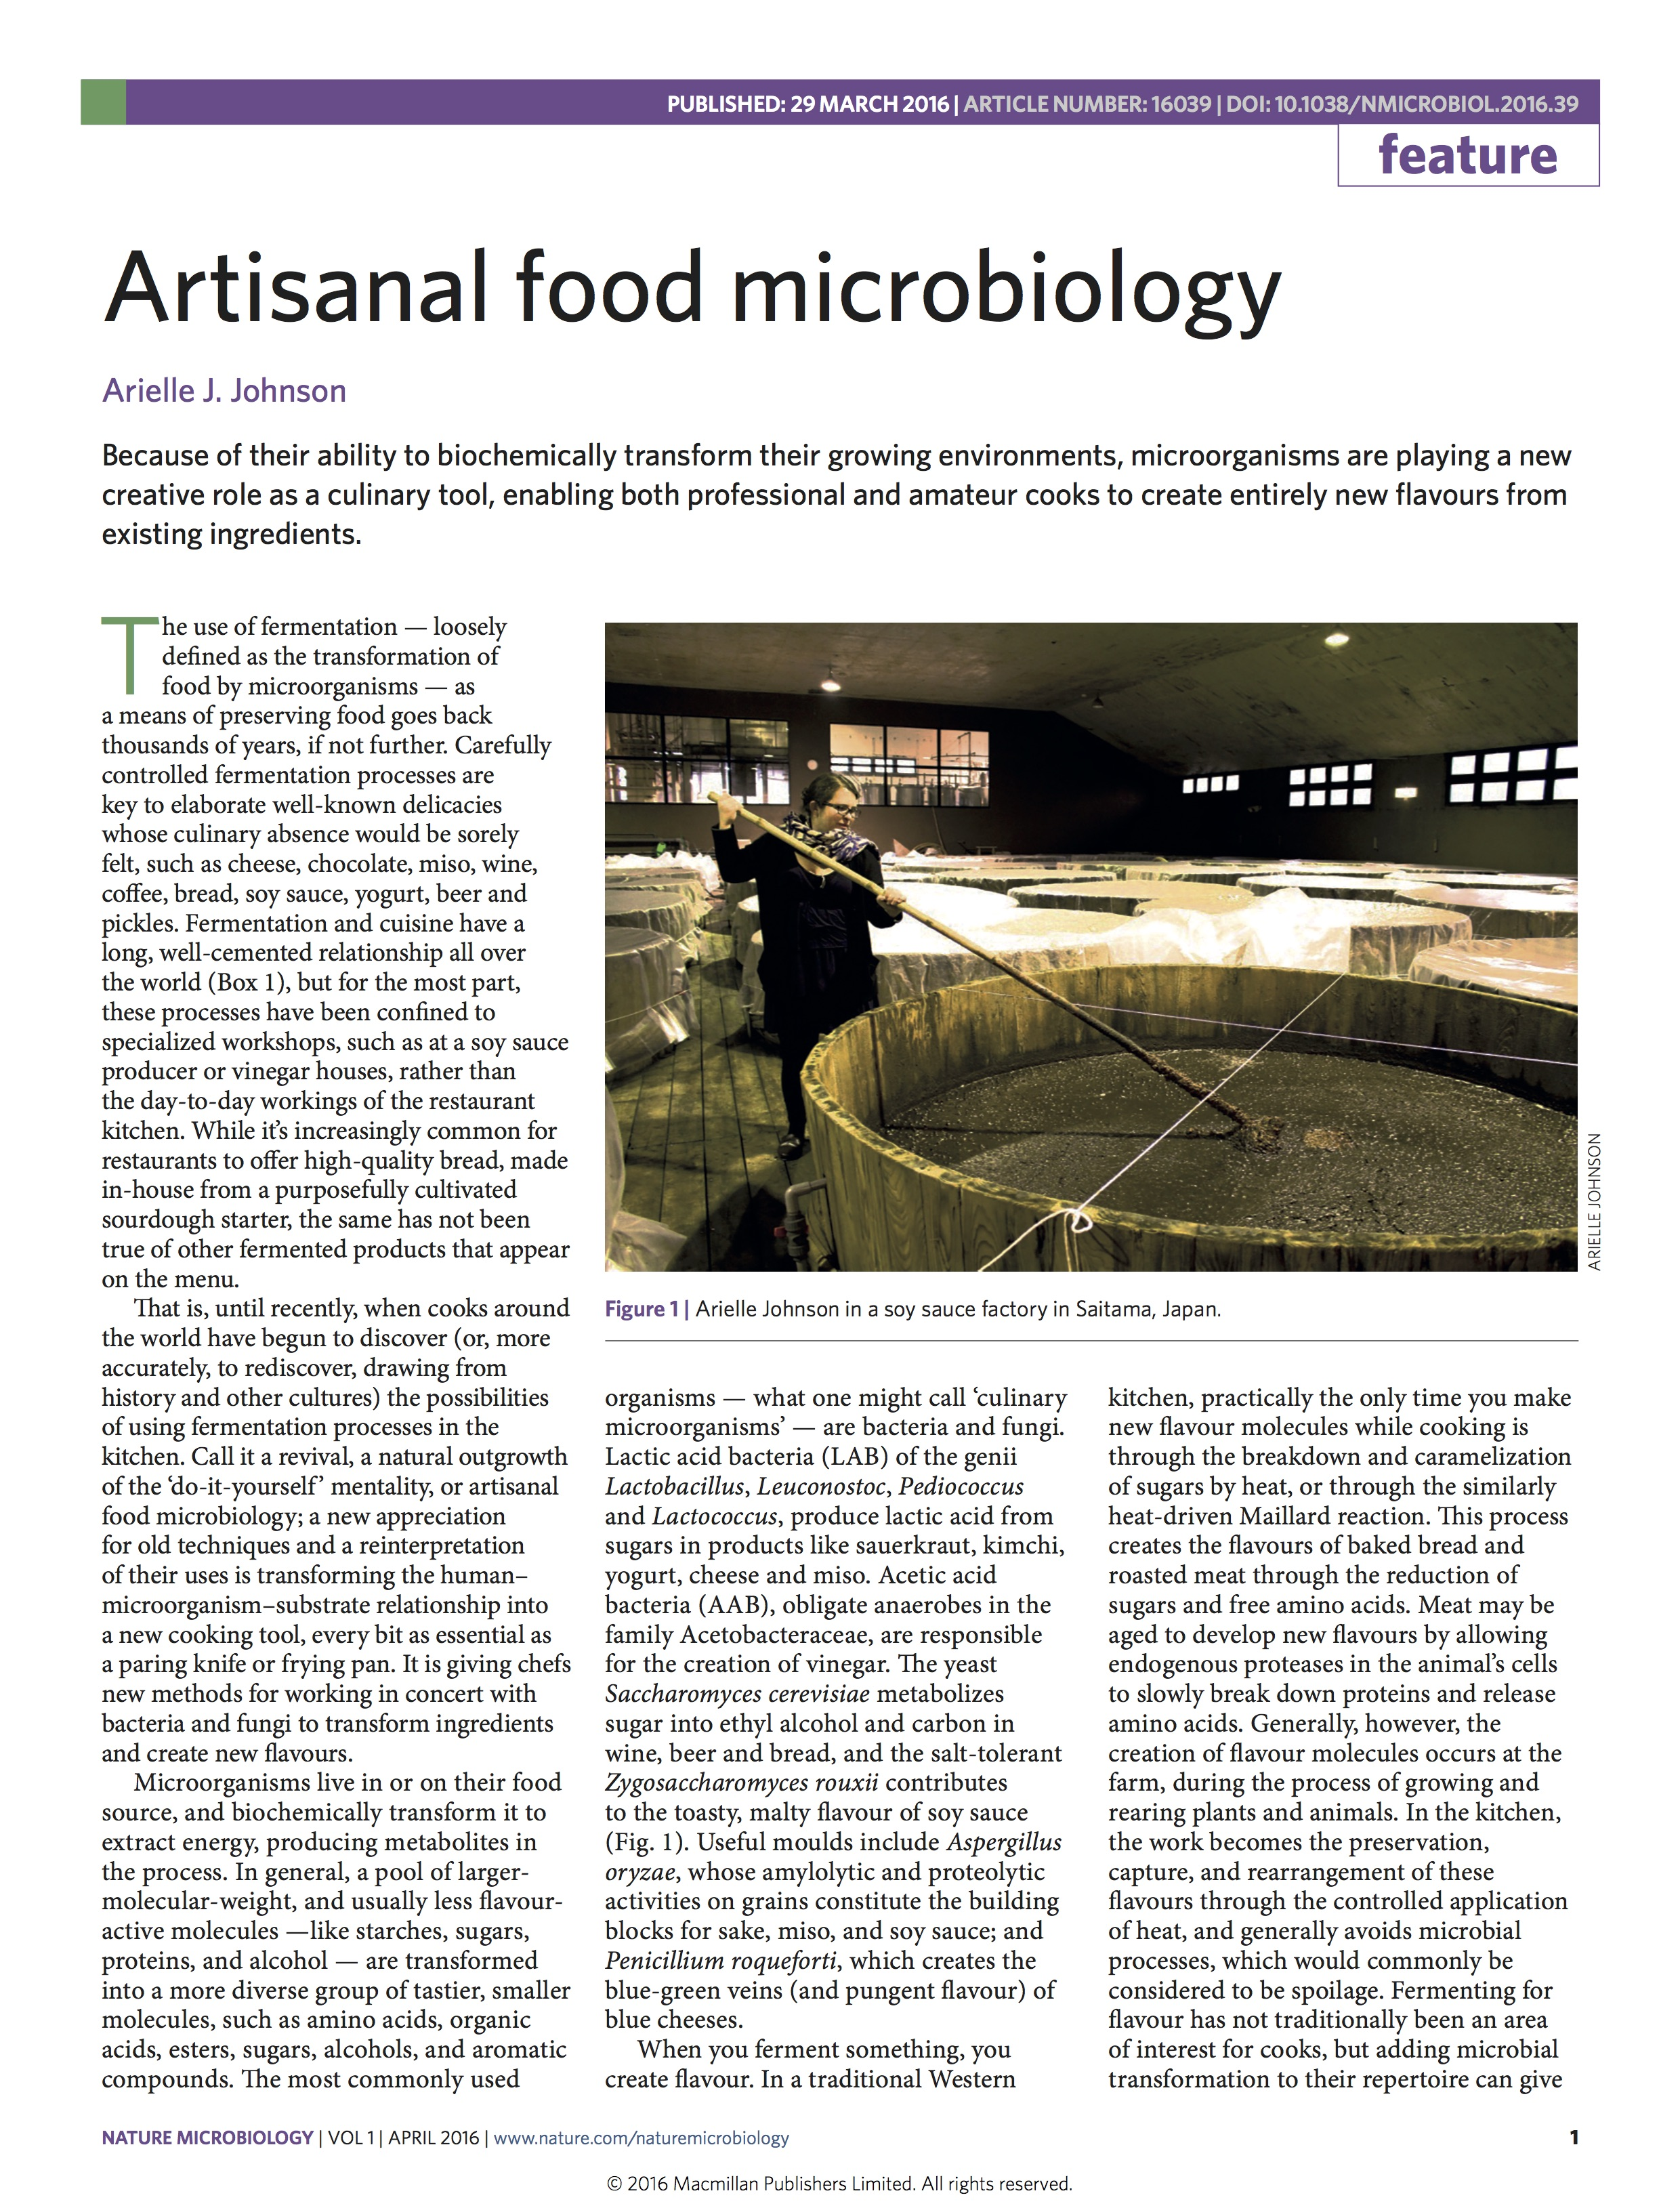 Nature Microbiology-Artisanal food microbiology-Arielle Johnson.jpg